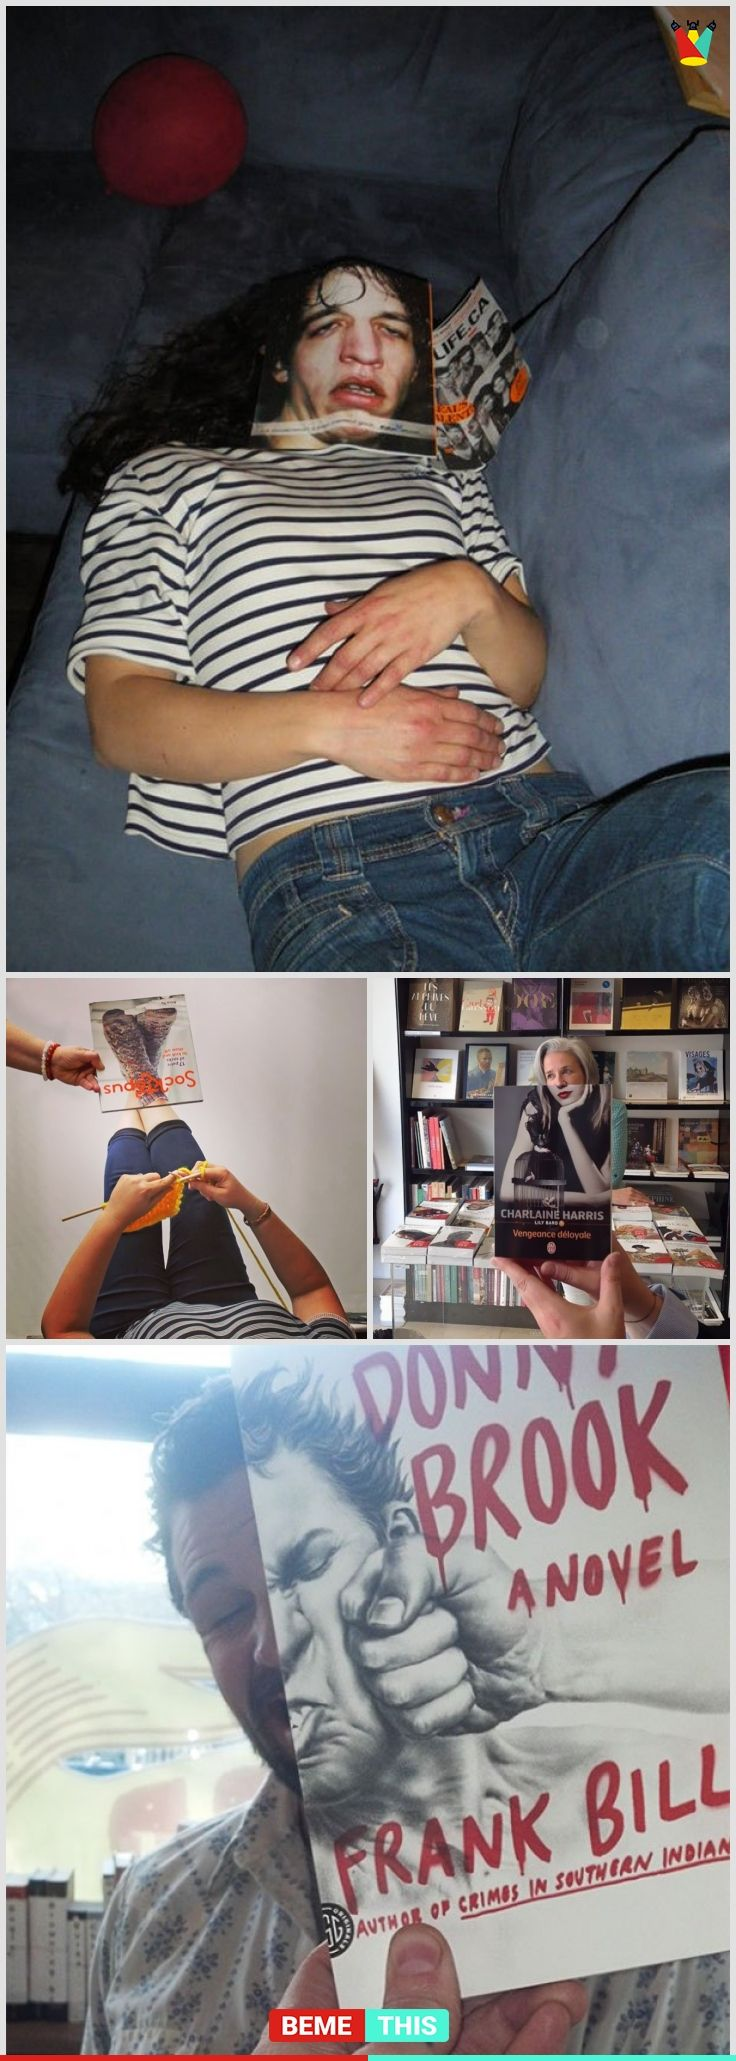 Most Creative Book Cover : Of the most creative and funny illusions using book